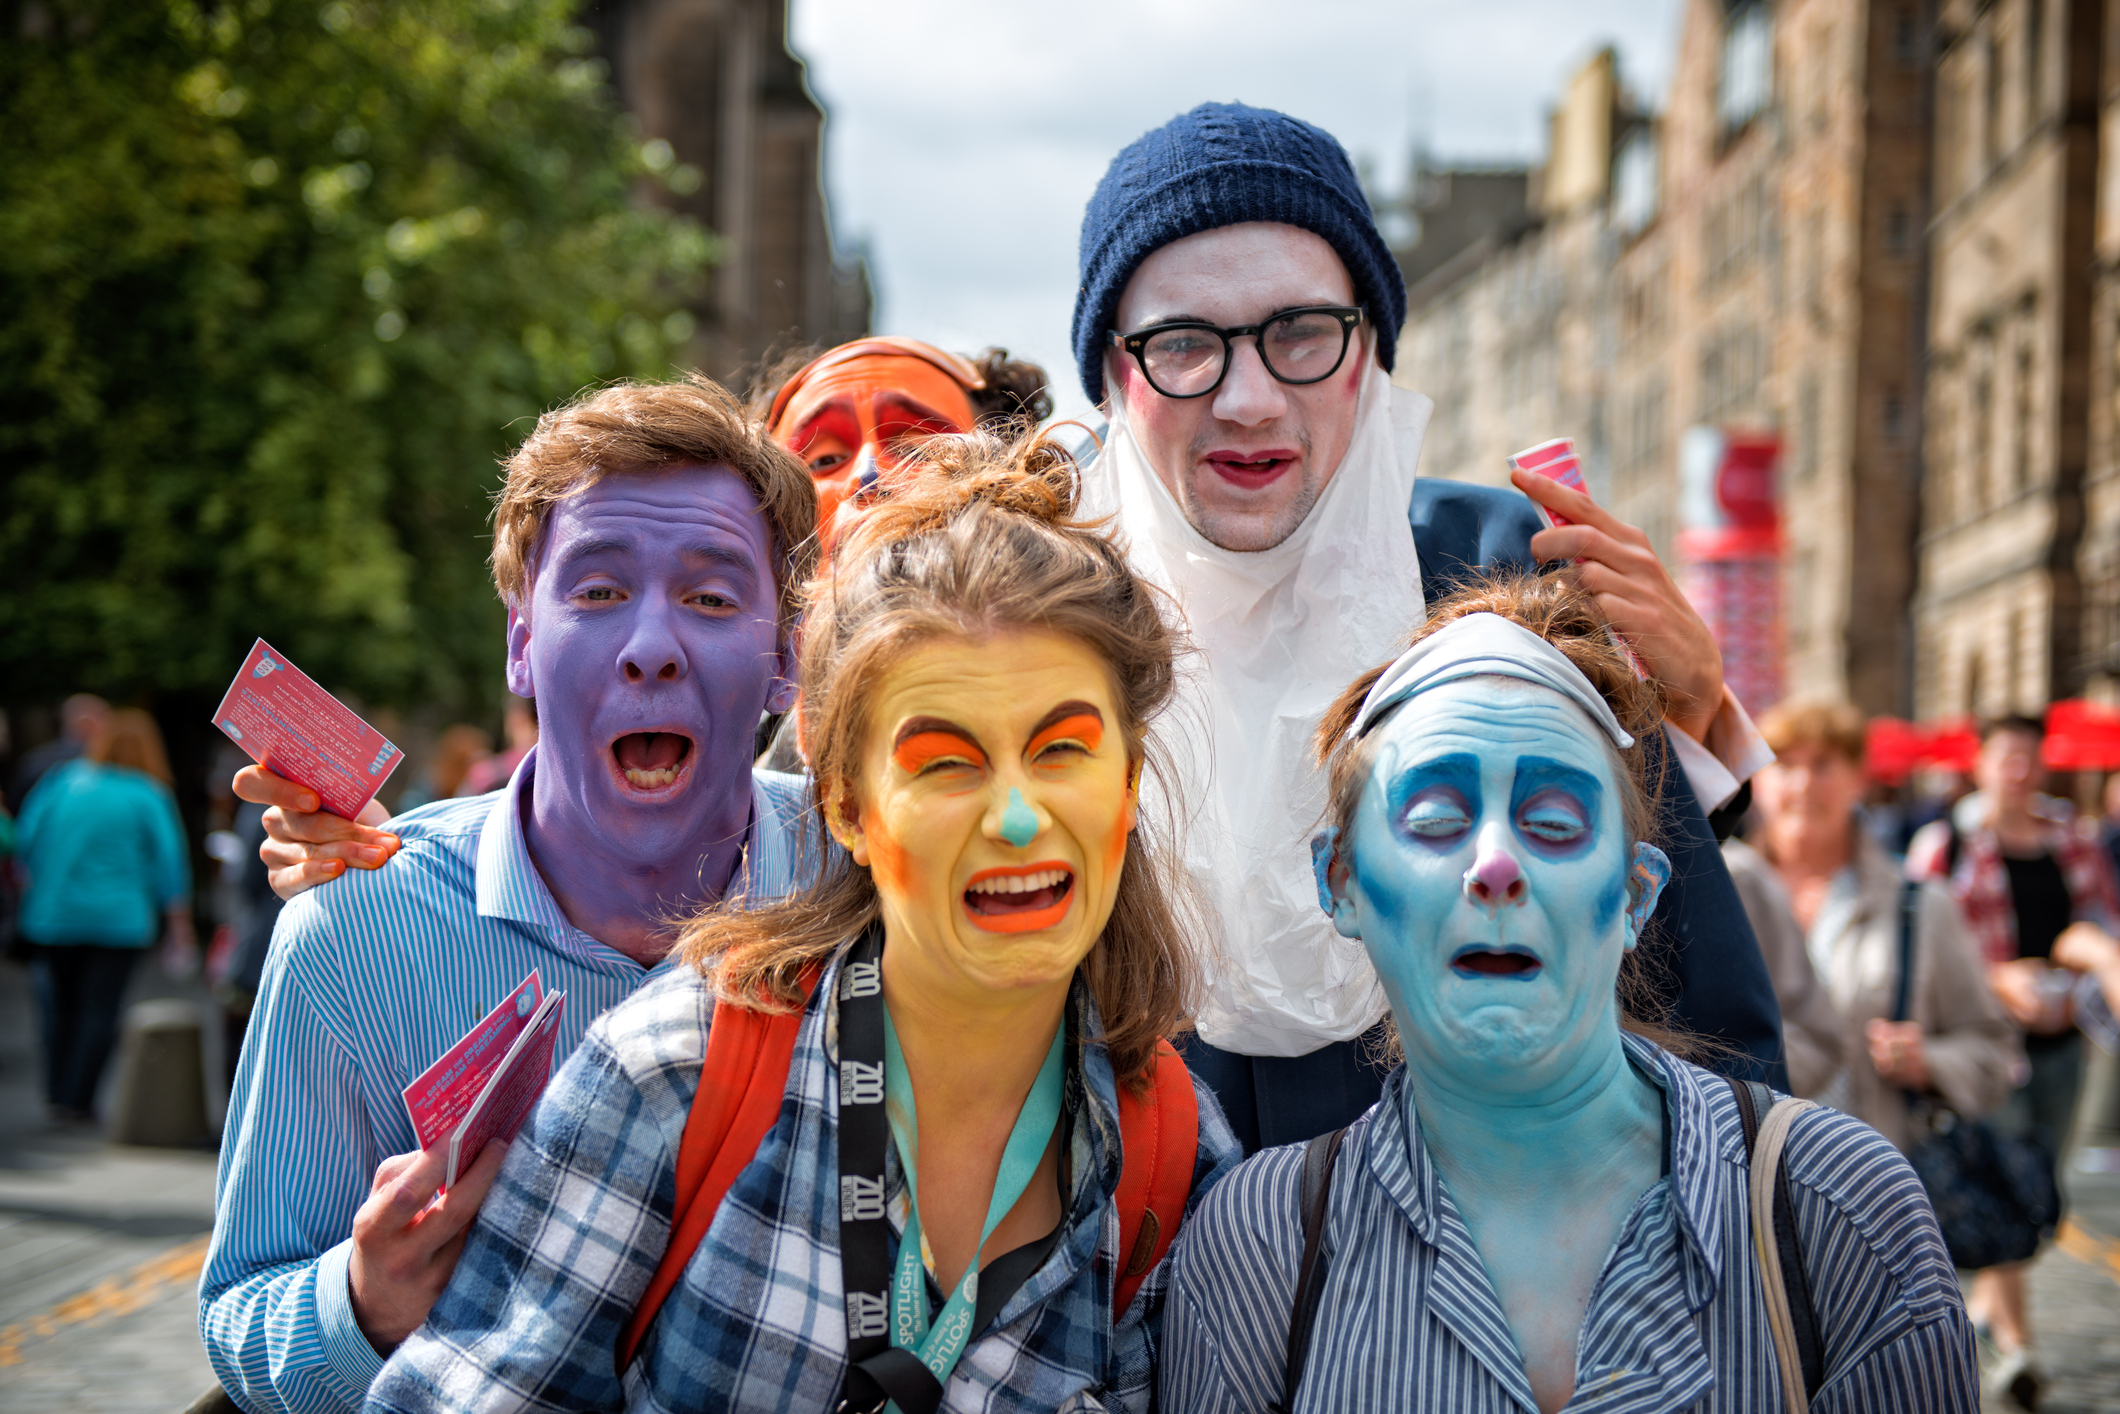 Edinburgh Fringe hacks: How to see the world's largest arts festival on a budget